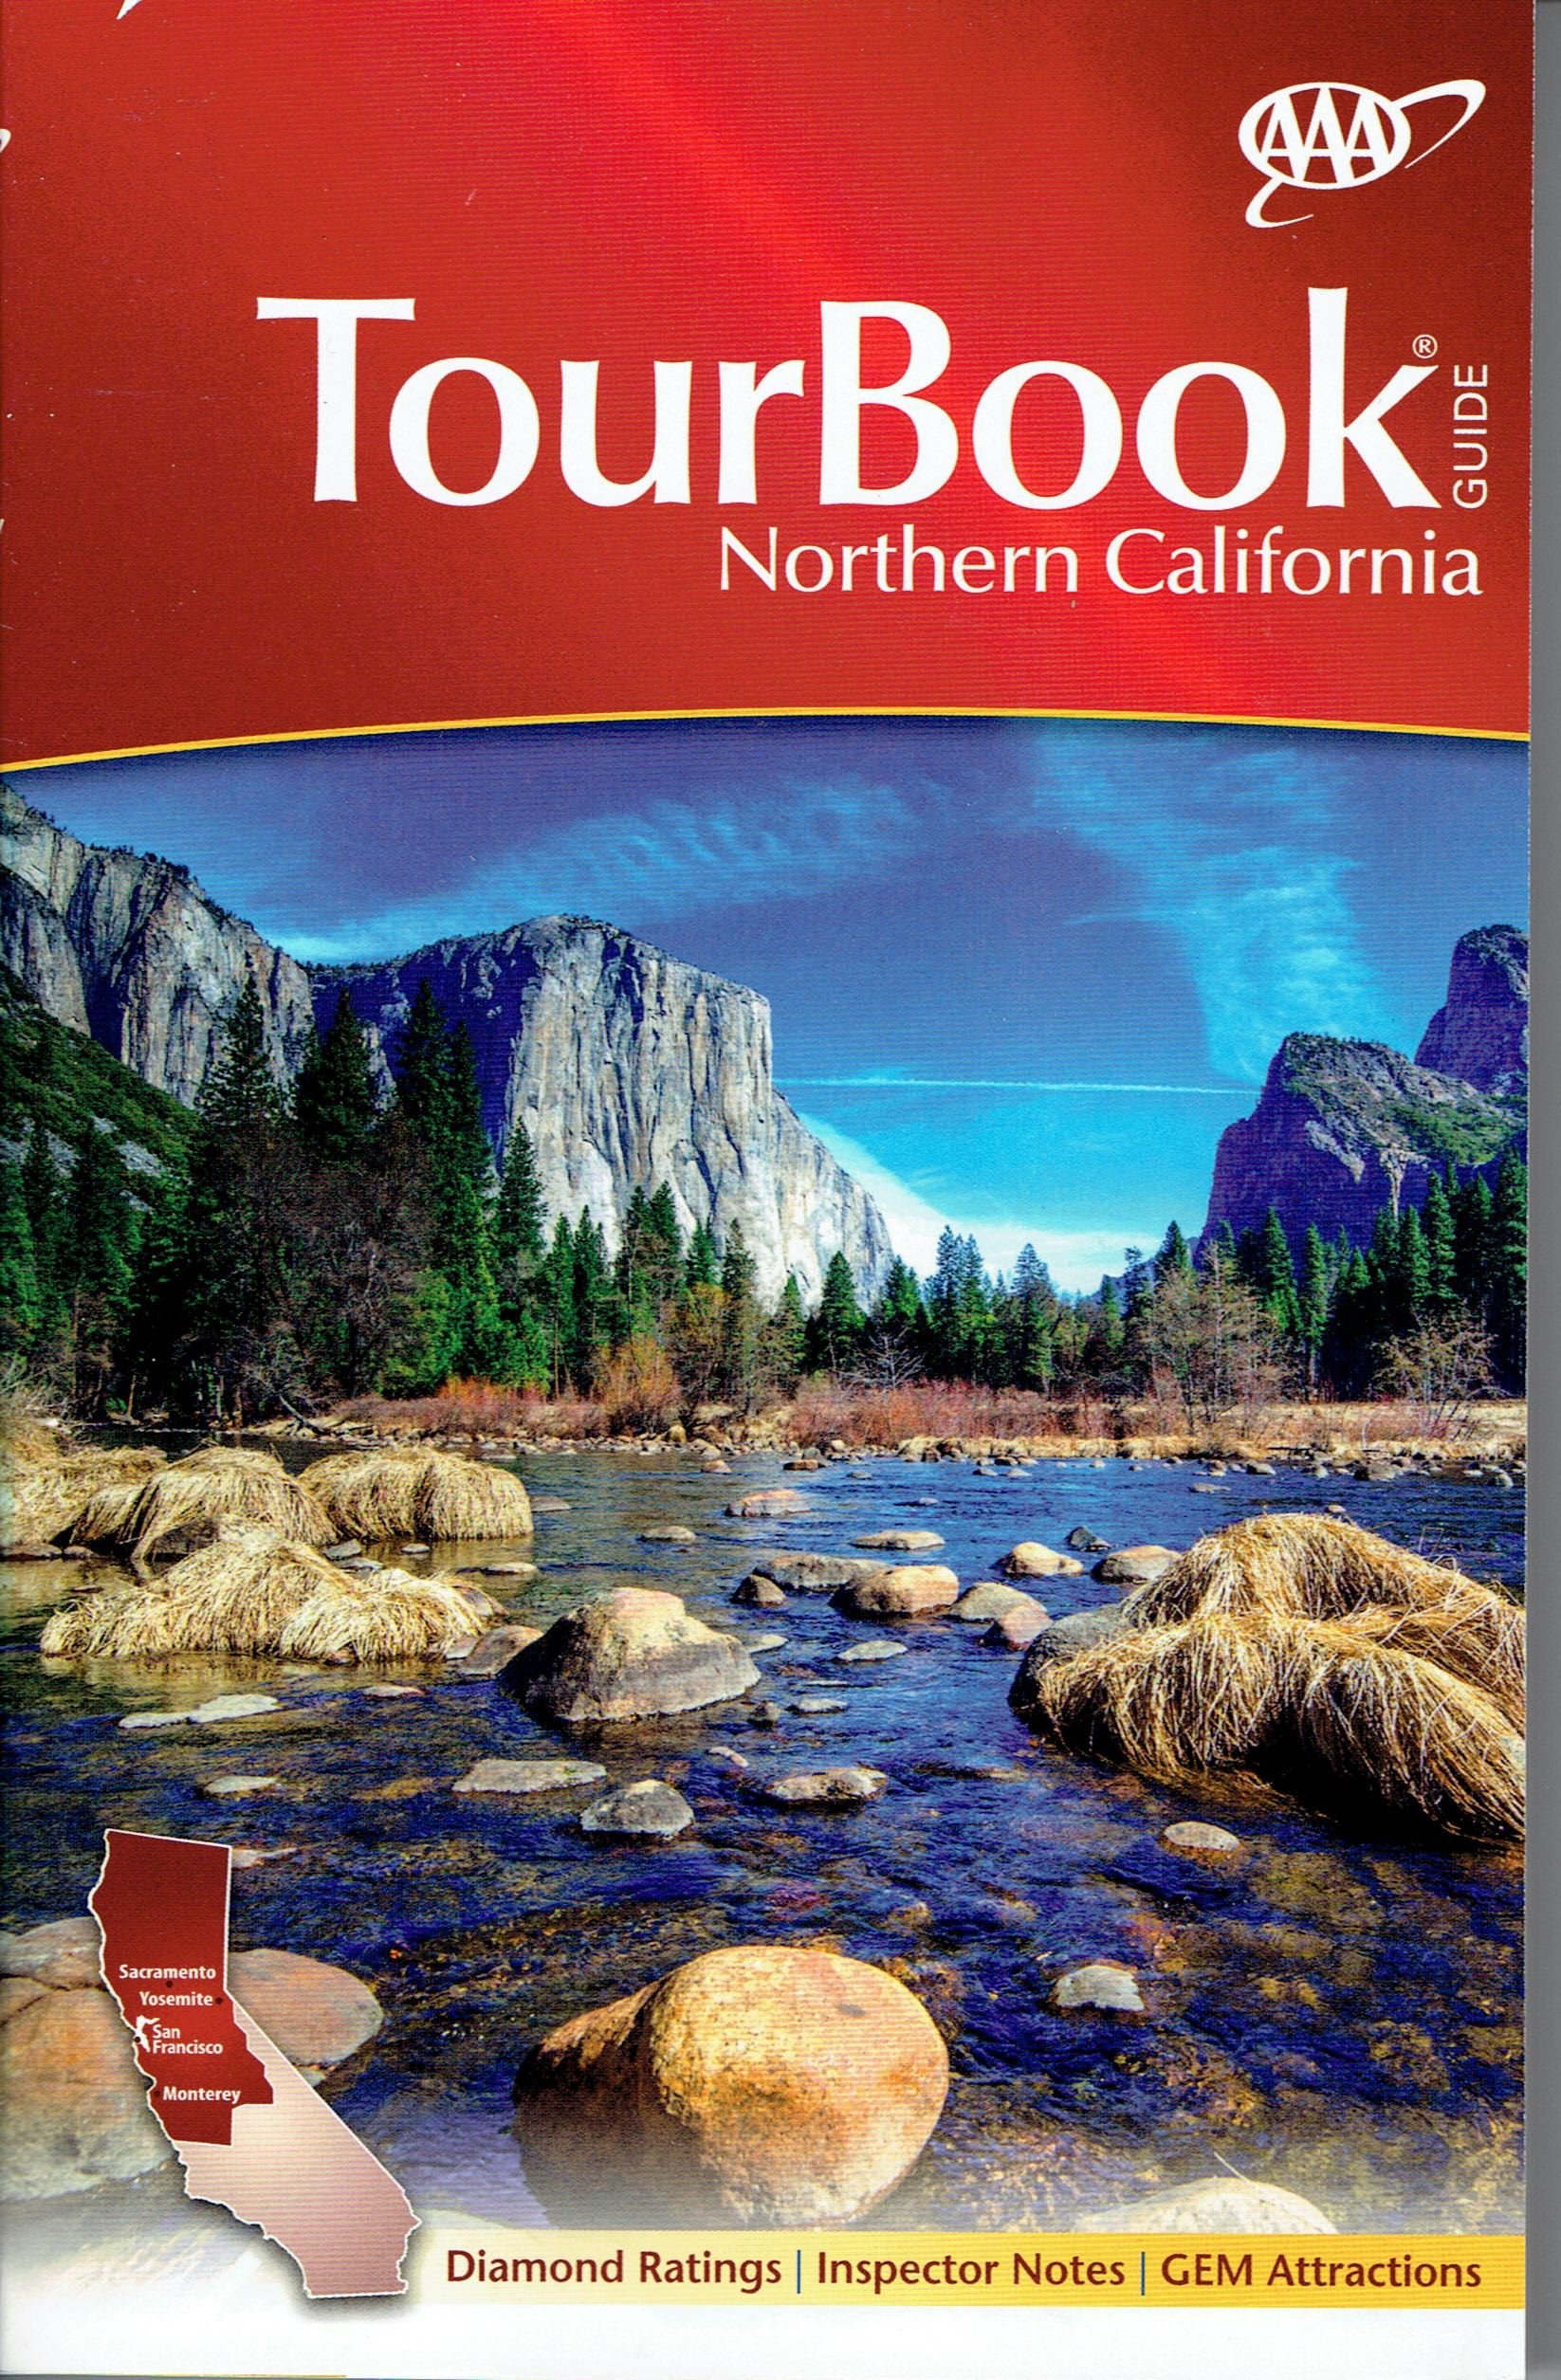 Read Online Northern California Tour Book Guide 2017 - AAA Look up any town/city to find/compare nearly all hotels, restaurants, attractions with ratings, inspector notes, recommendations. 478 page TourBook PDF